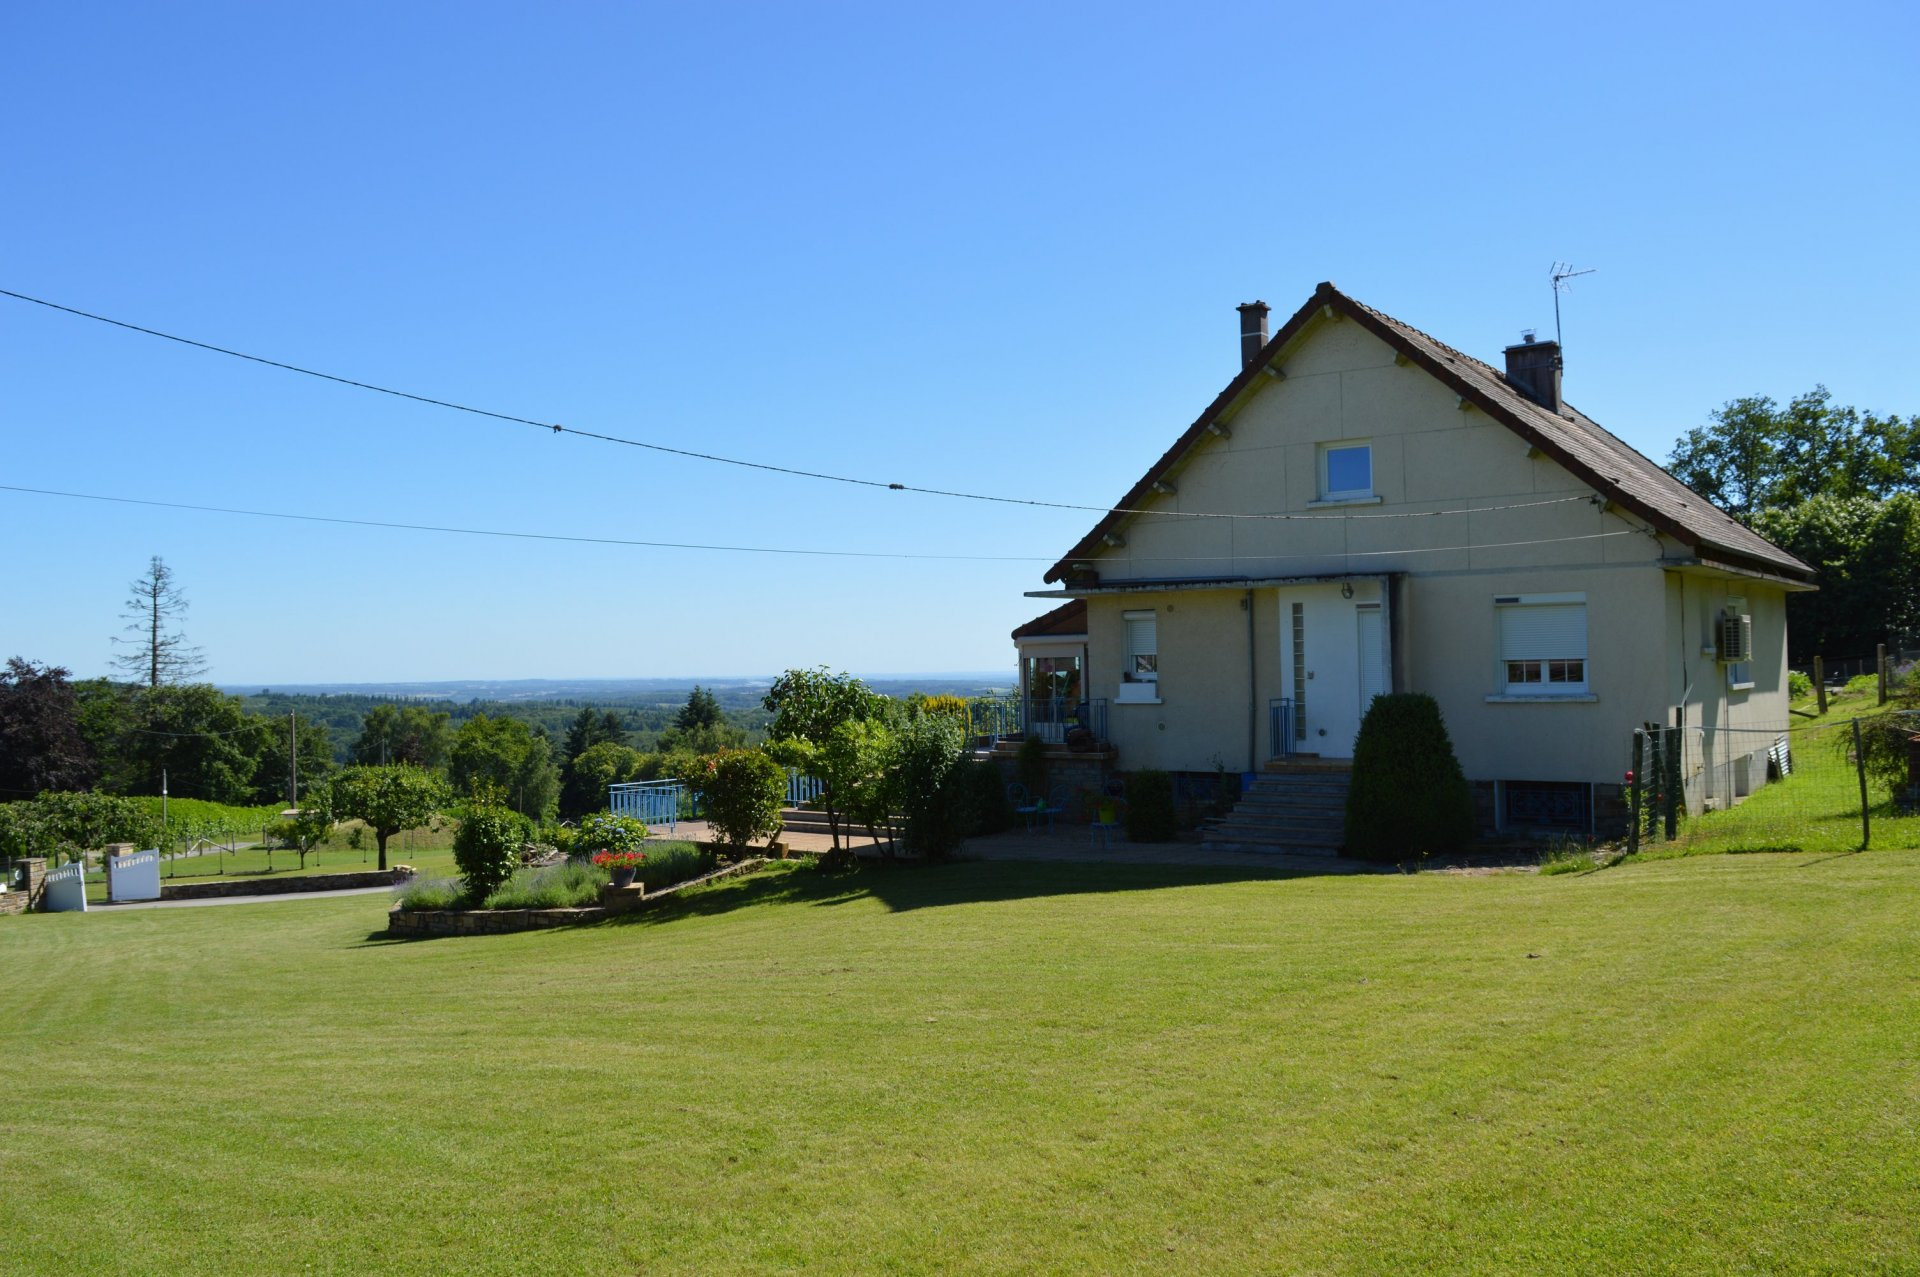 4 bed hill top family home looking over 30kms of the Perigord National Park